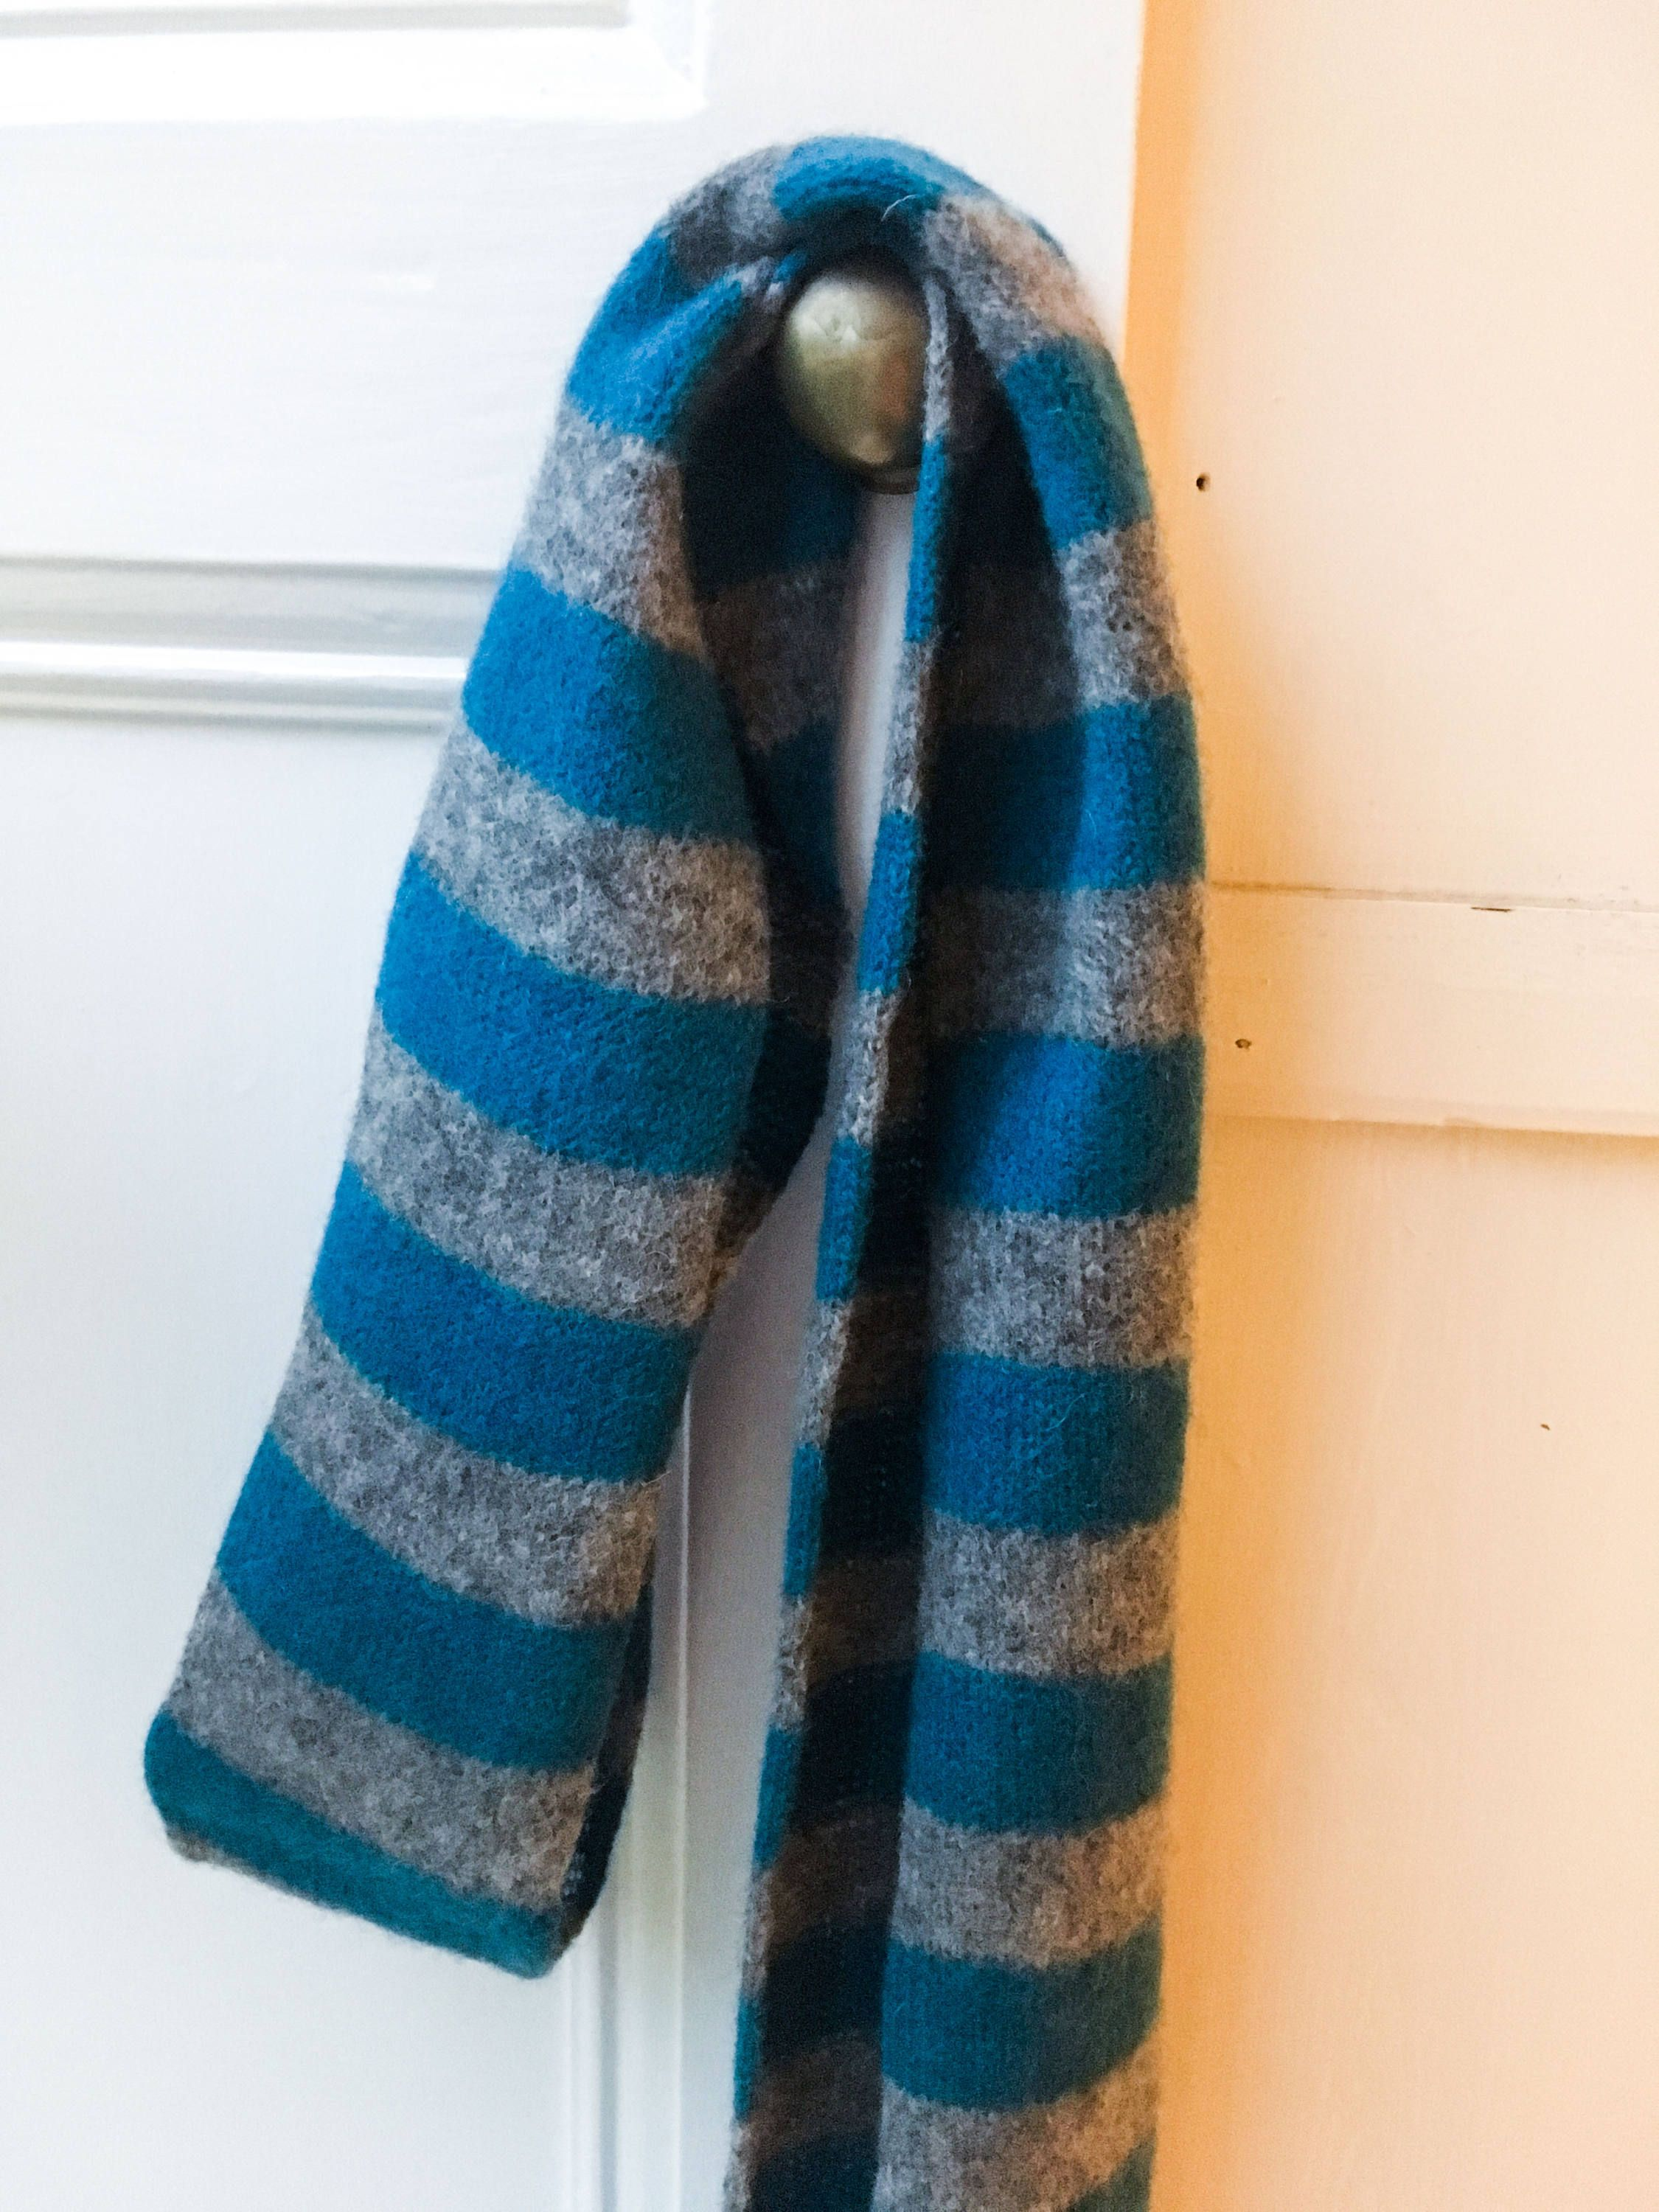 67d965240d820 Soft Skinny Scarf - Felted Merino Lambswool - Teal Blue and Grey Knit  Skinny Scarves,